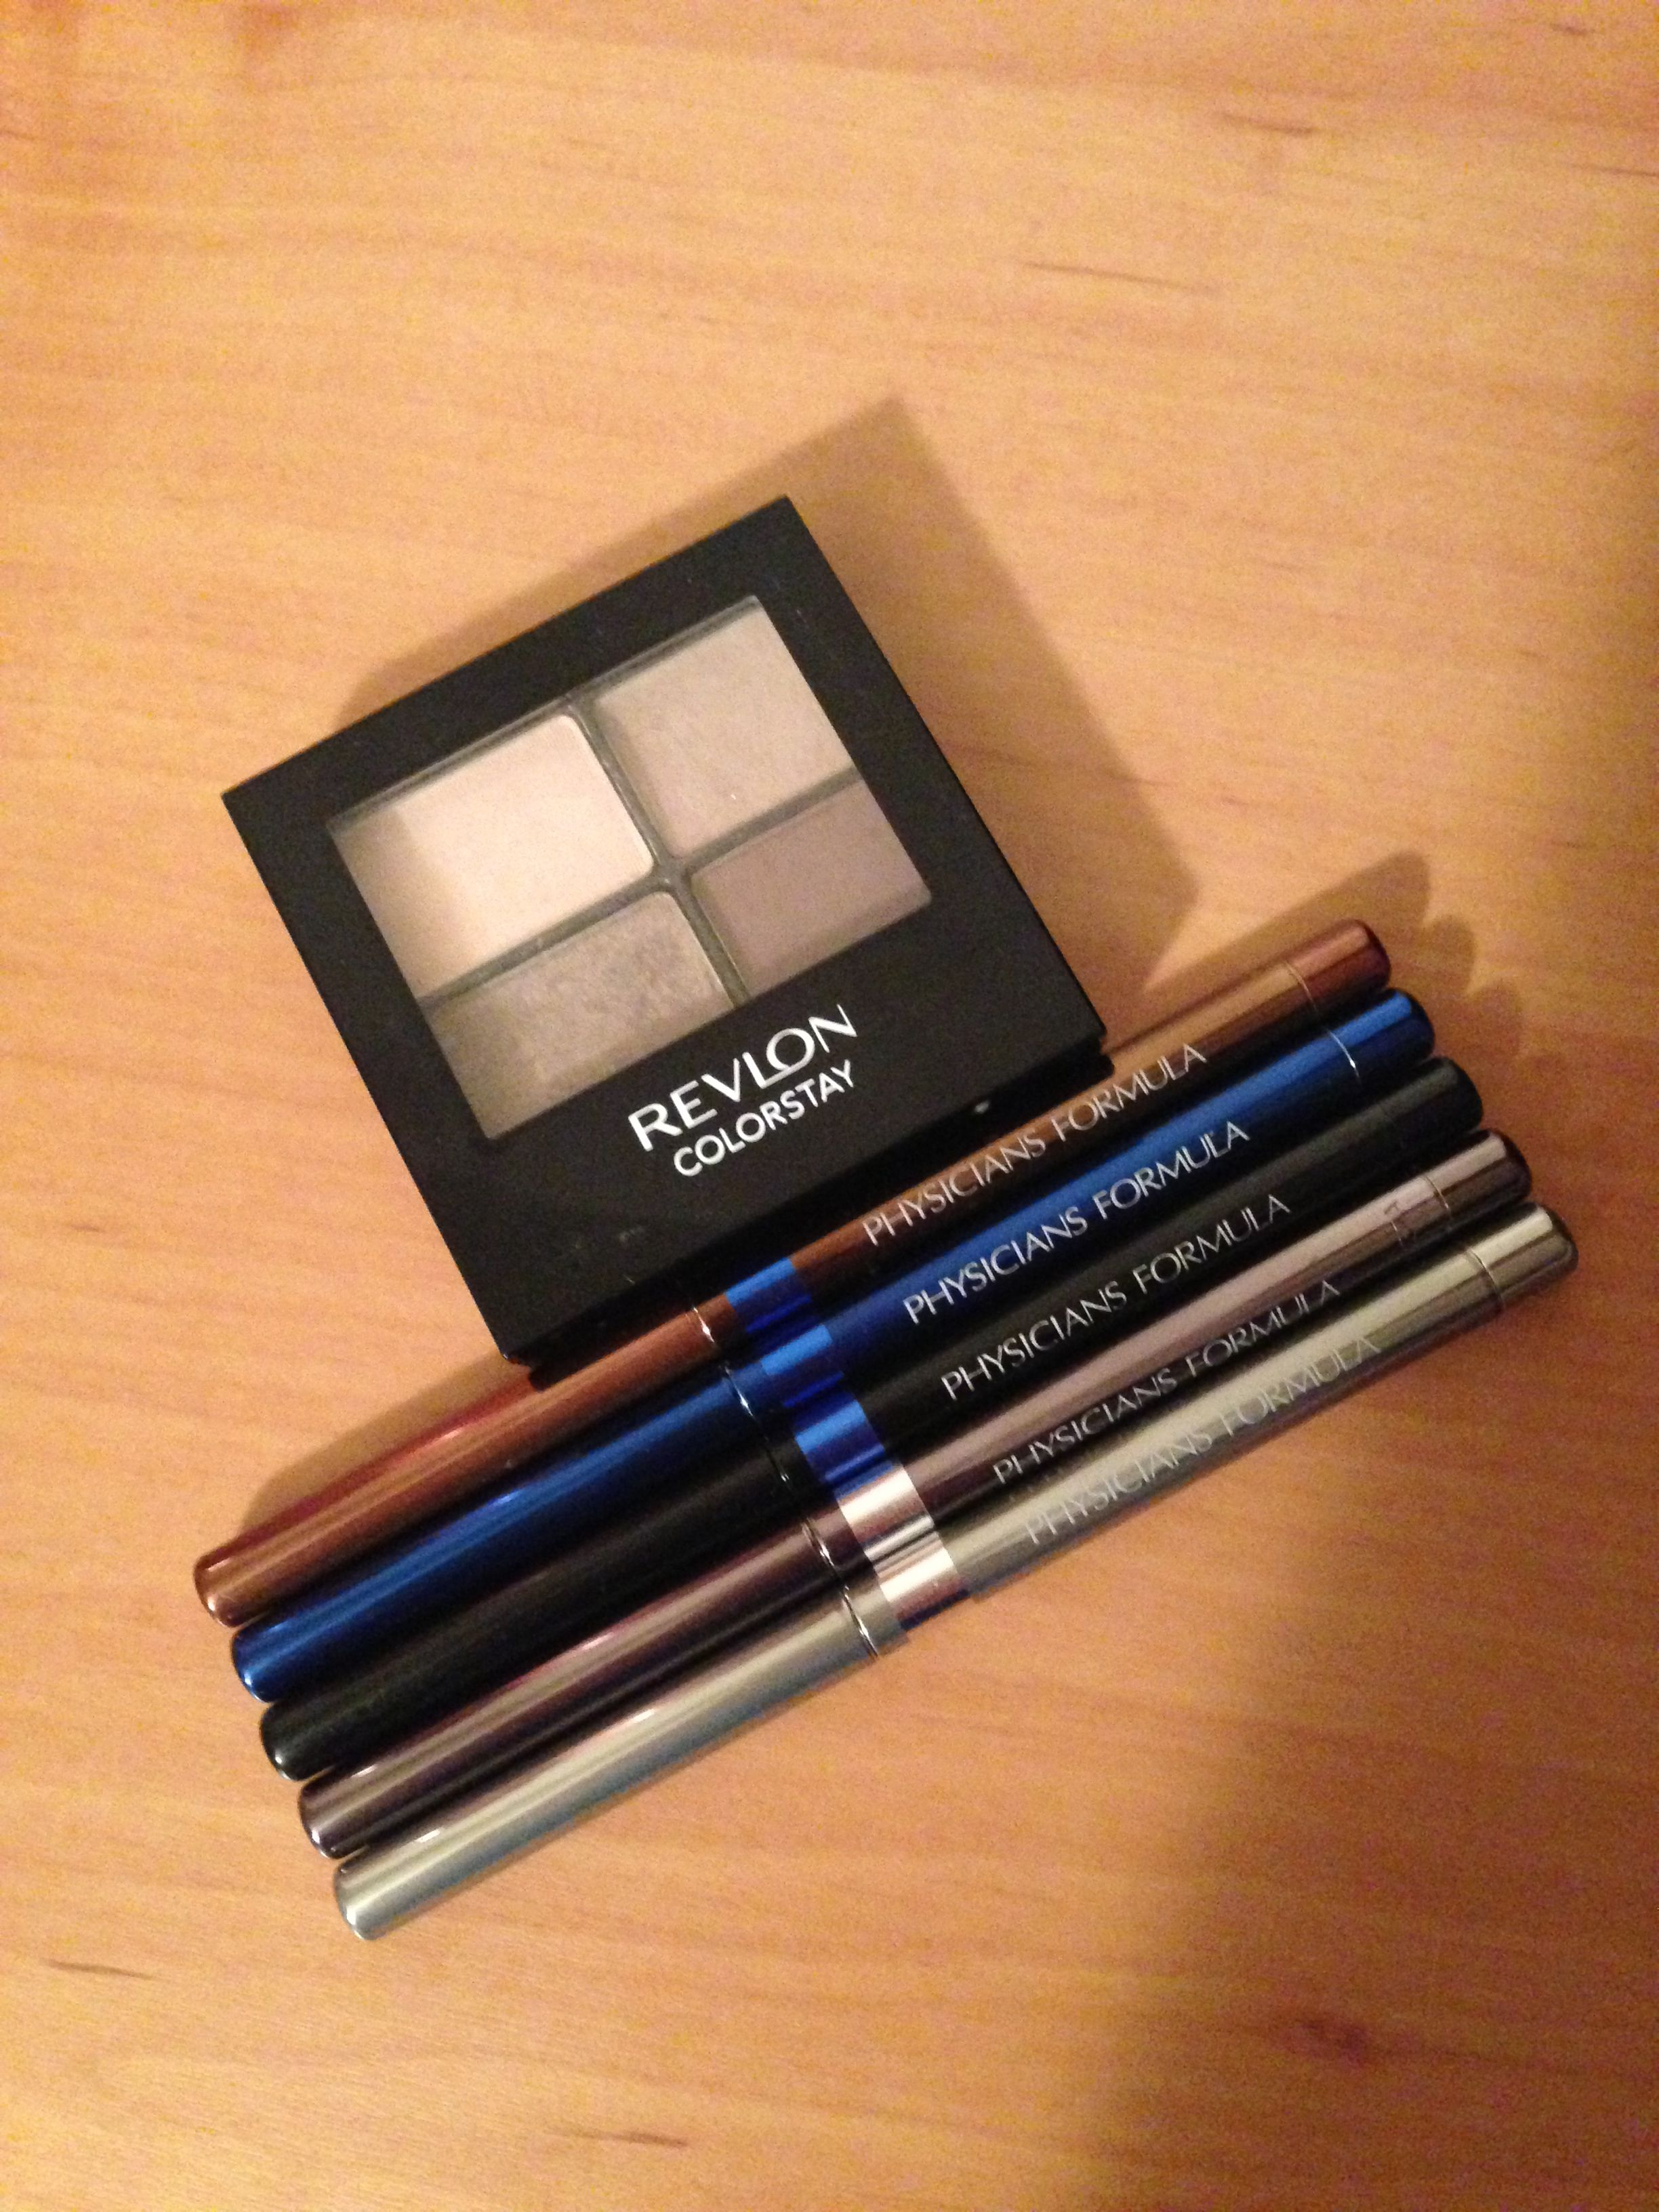 Revlon colorstay eyeshadow quad in addictive its been well loved revlon colorstay eyeshadow quad in addictive its been well loved for my eyebrows yup you heard me i apply it with an flat edge eyeliner brush ccuart Images